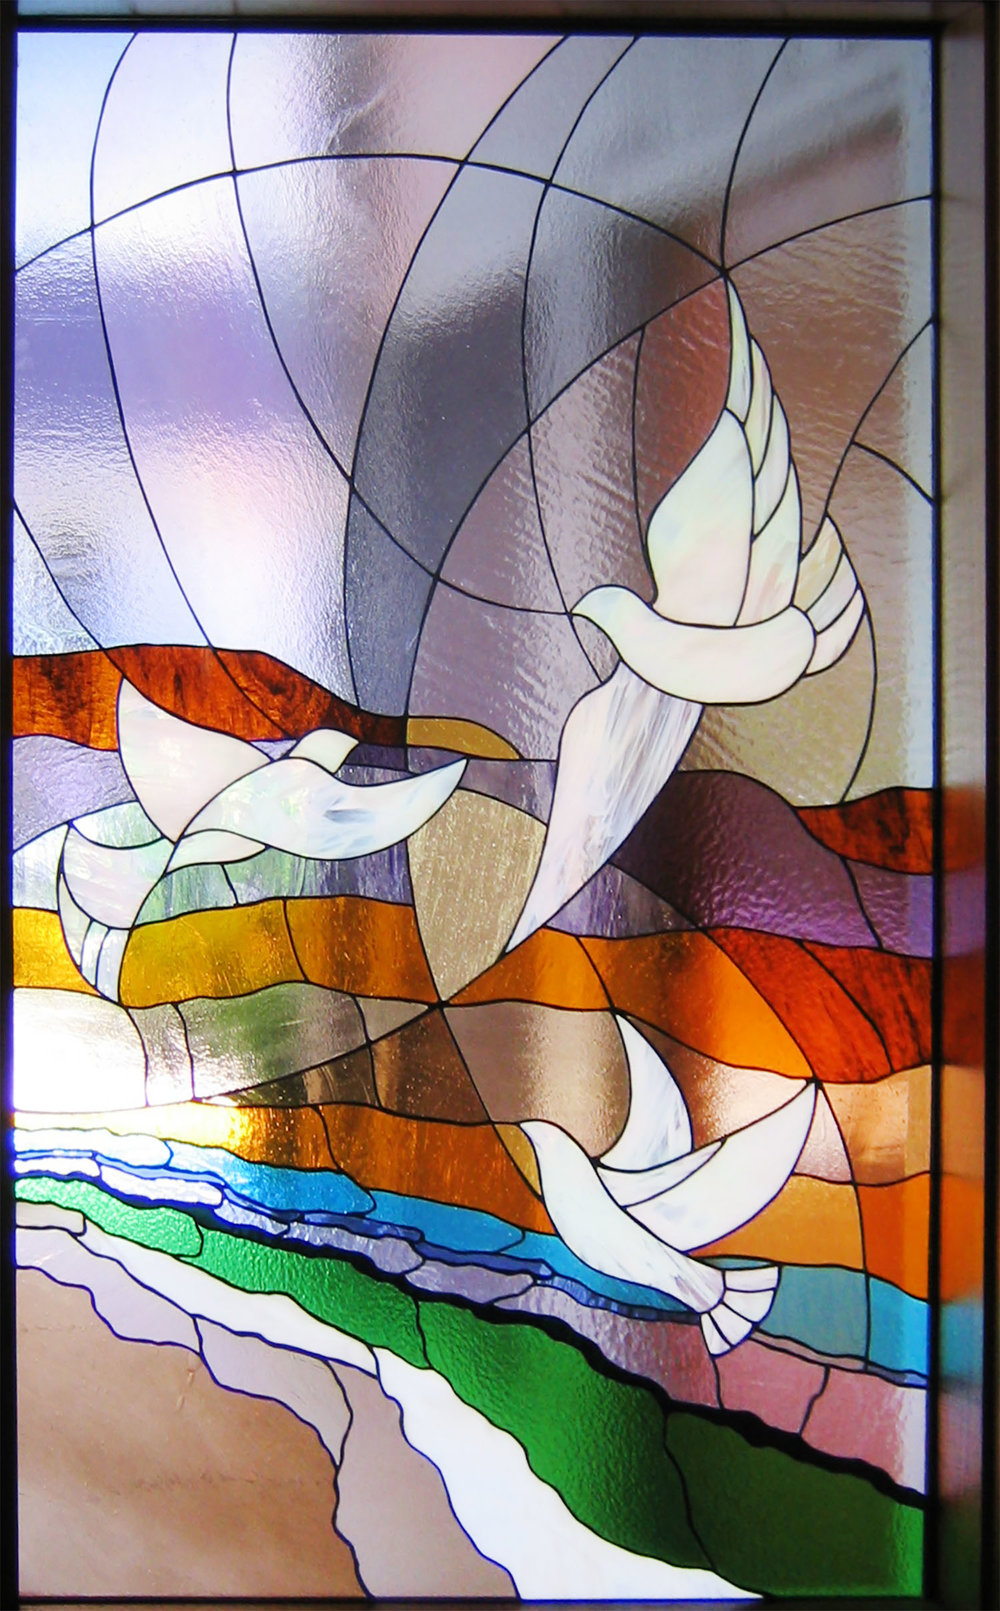 abstract stained glass dove birds sunset palo alto atherton menlo park san jose san francisco bay area.jpg